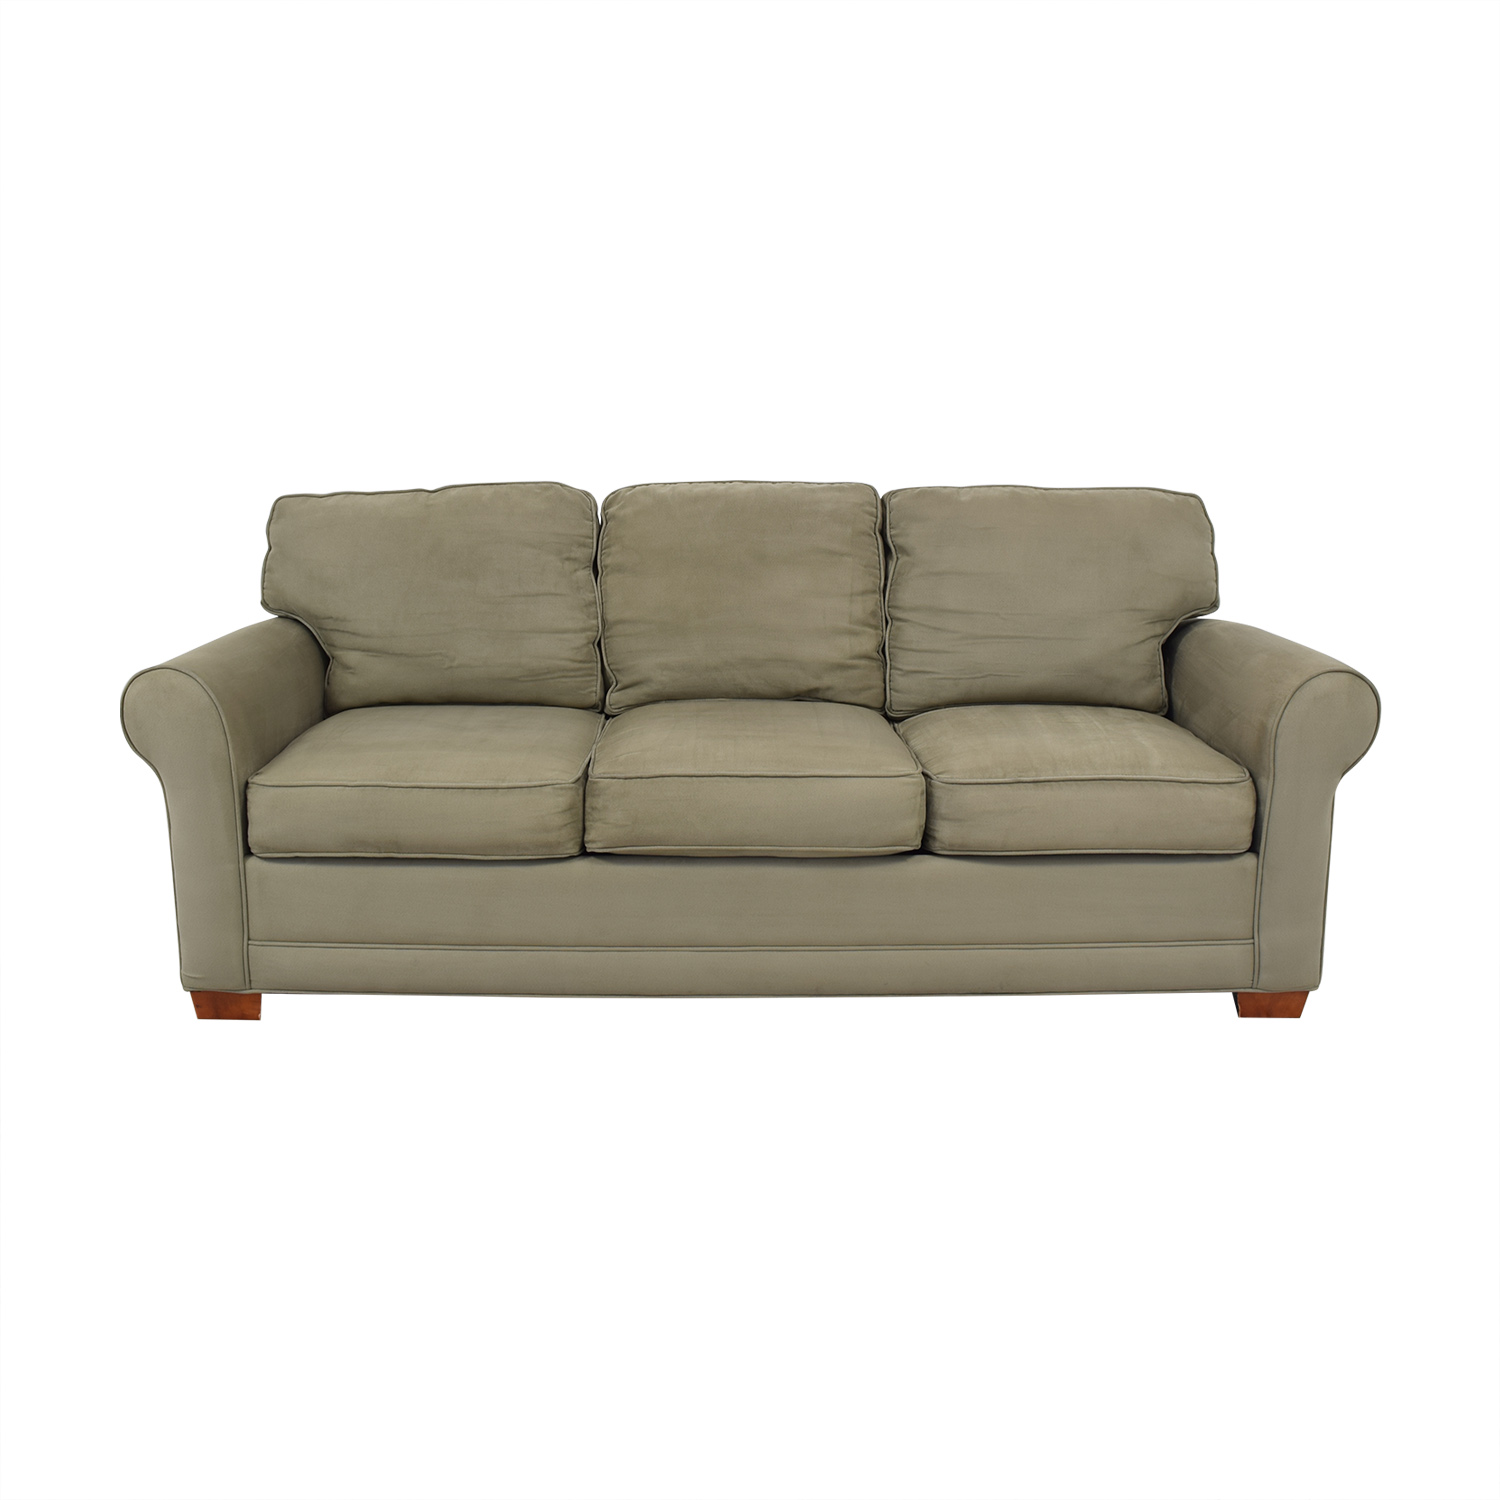 HM Richards Furniture Sofa sale